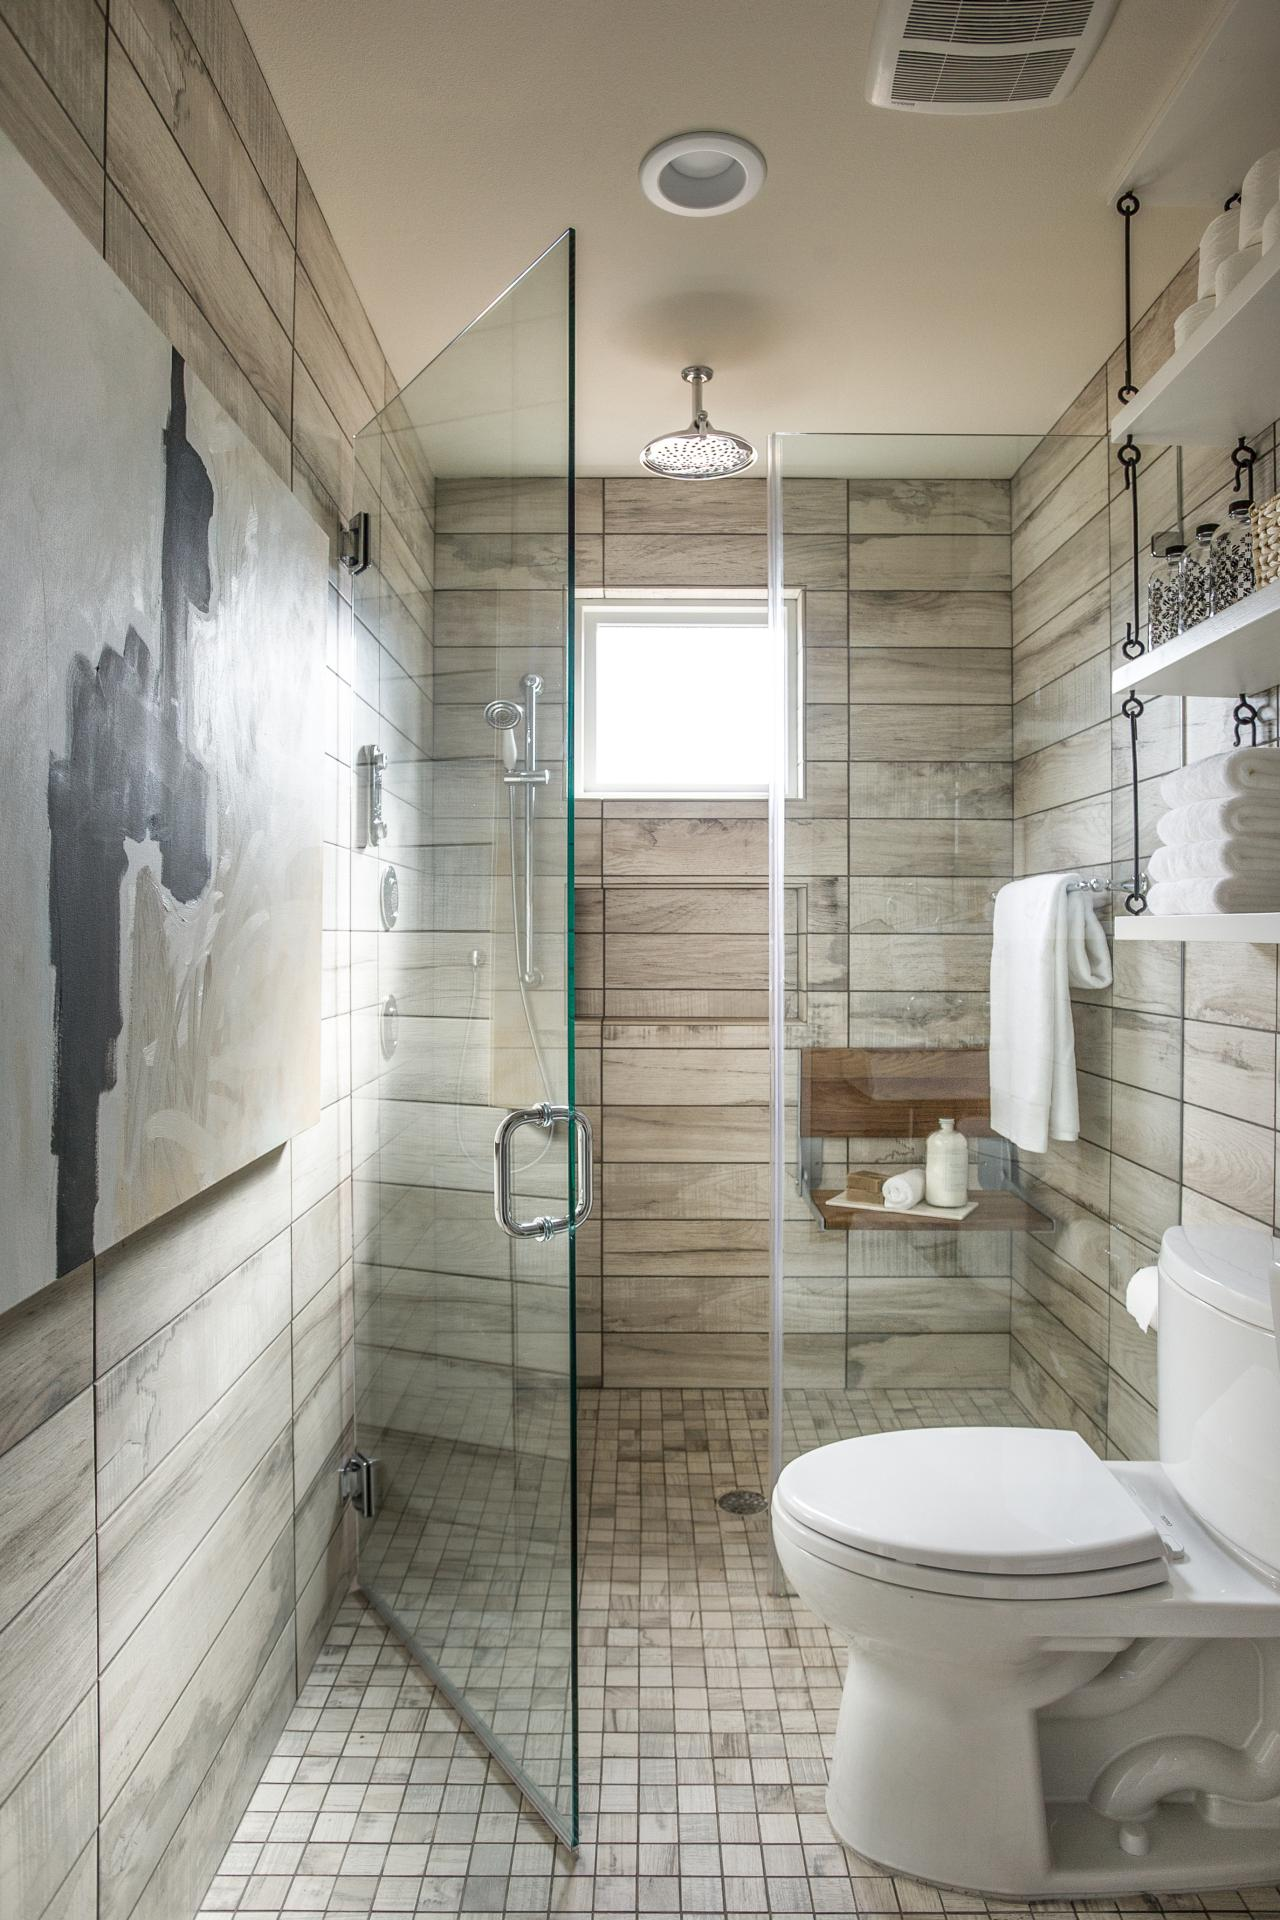 Ways To Tackle Storage In A Tiny Bathroom HGTVs Decorating - Small bathroom windows for small bathroom ideas